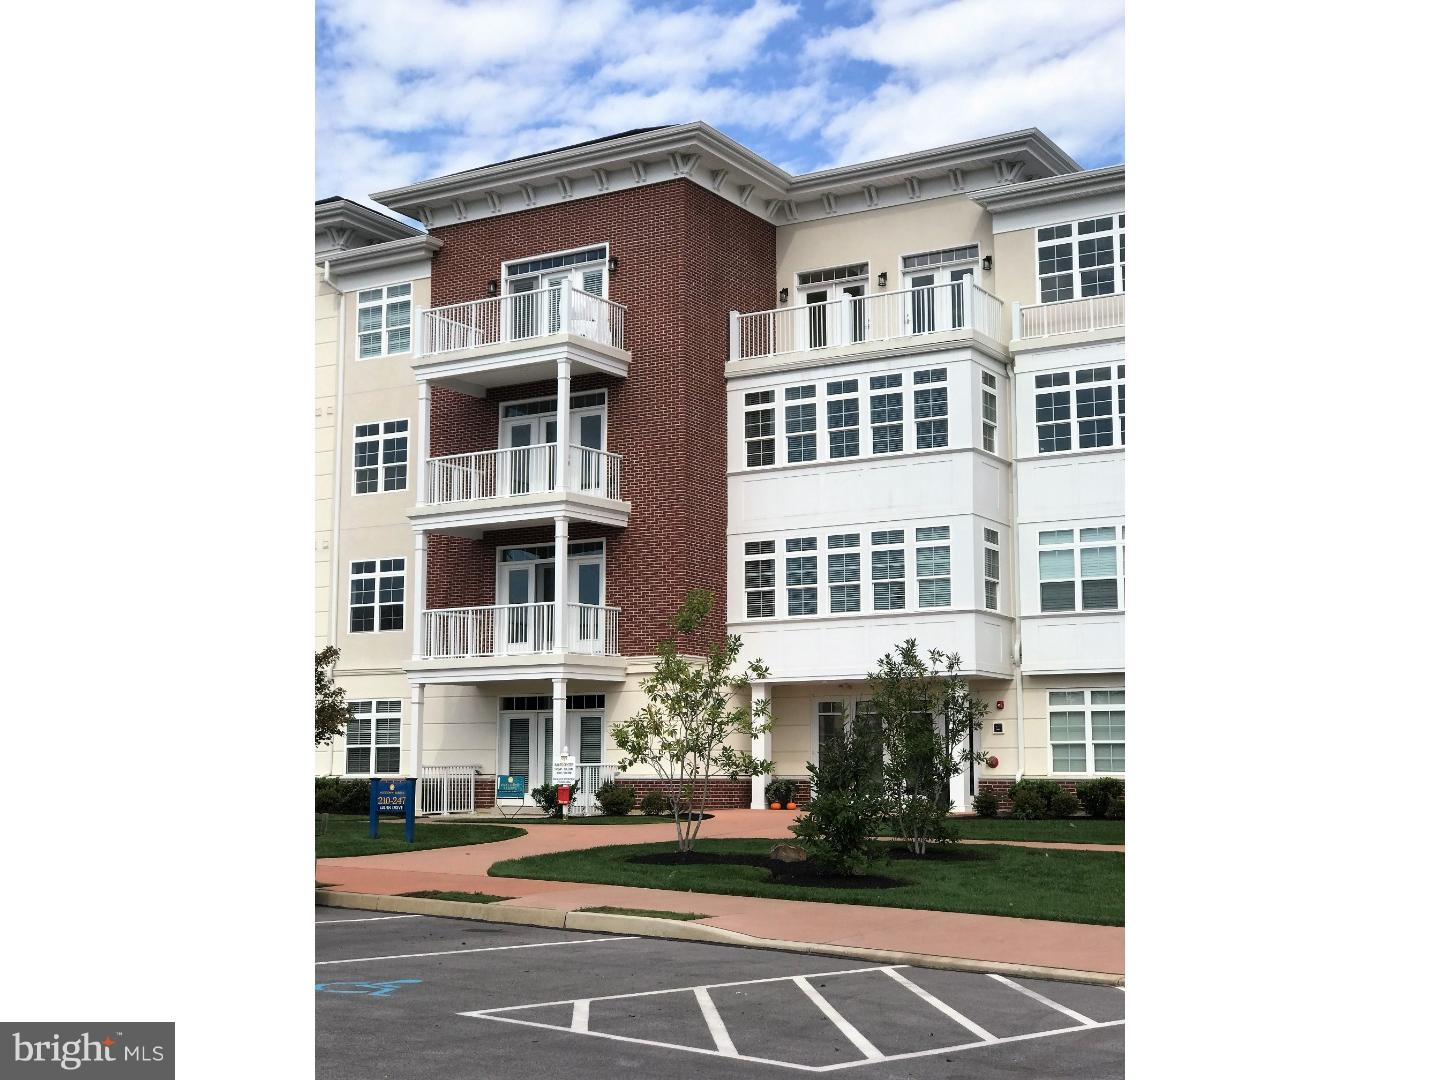 244 Gilpin Drive #244 West Chester, PA 19382